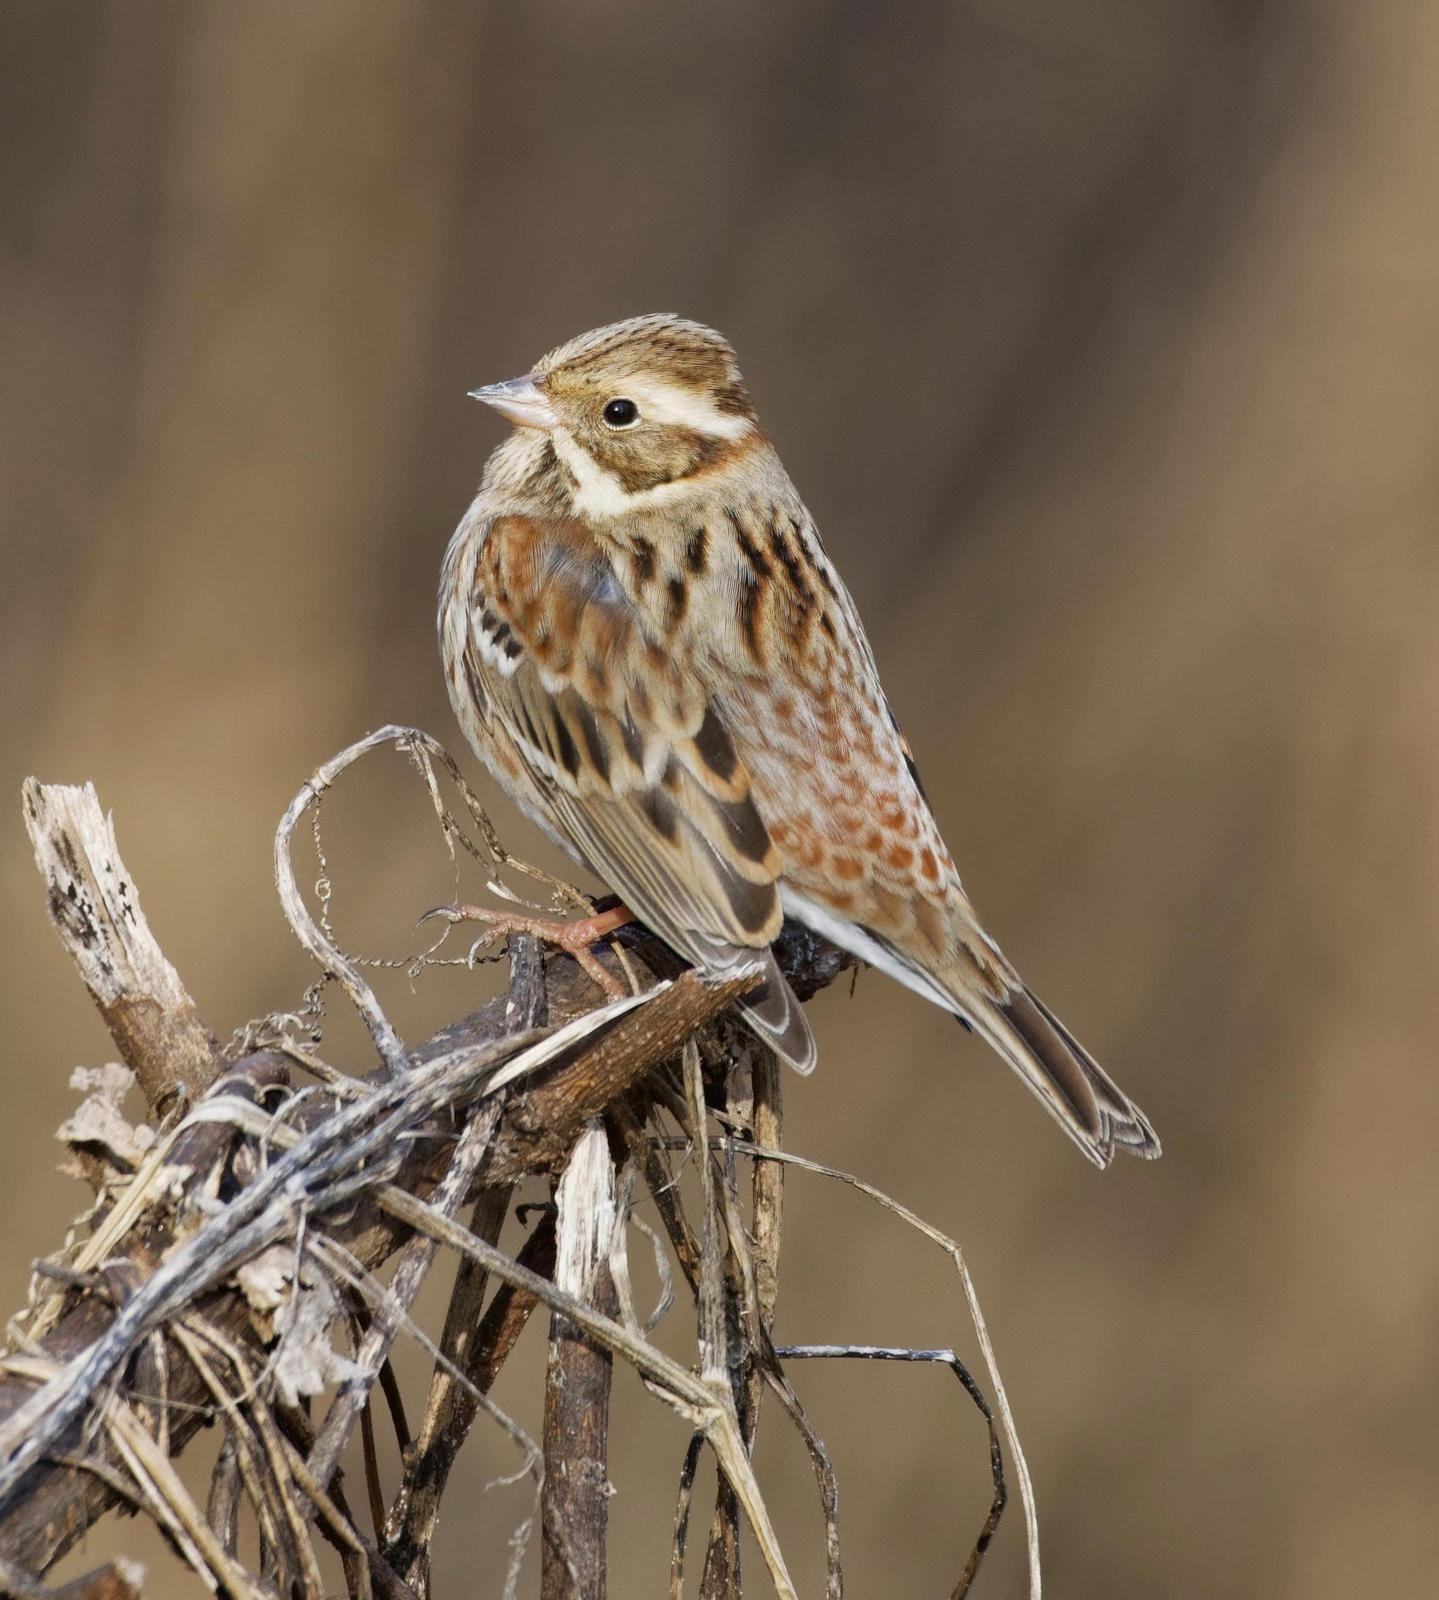 Rustic Bunting Photo by Robert Cousins